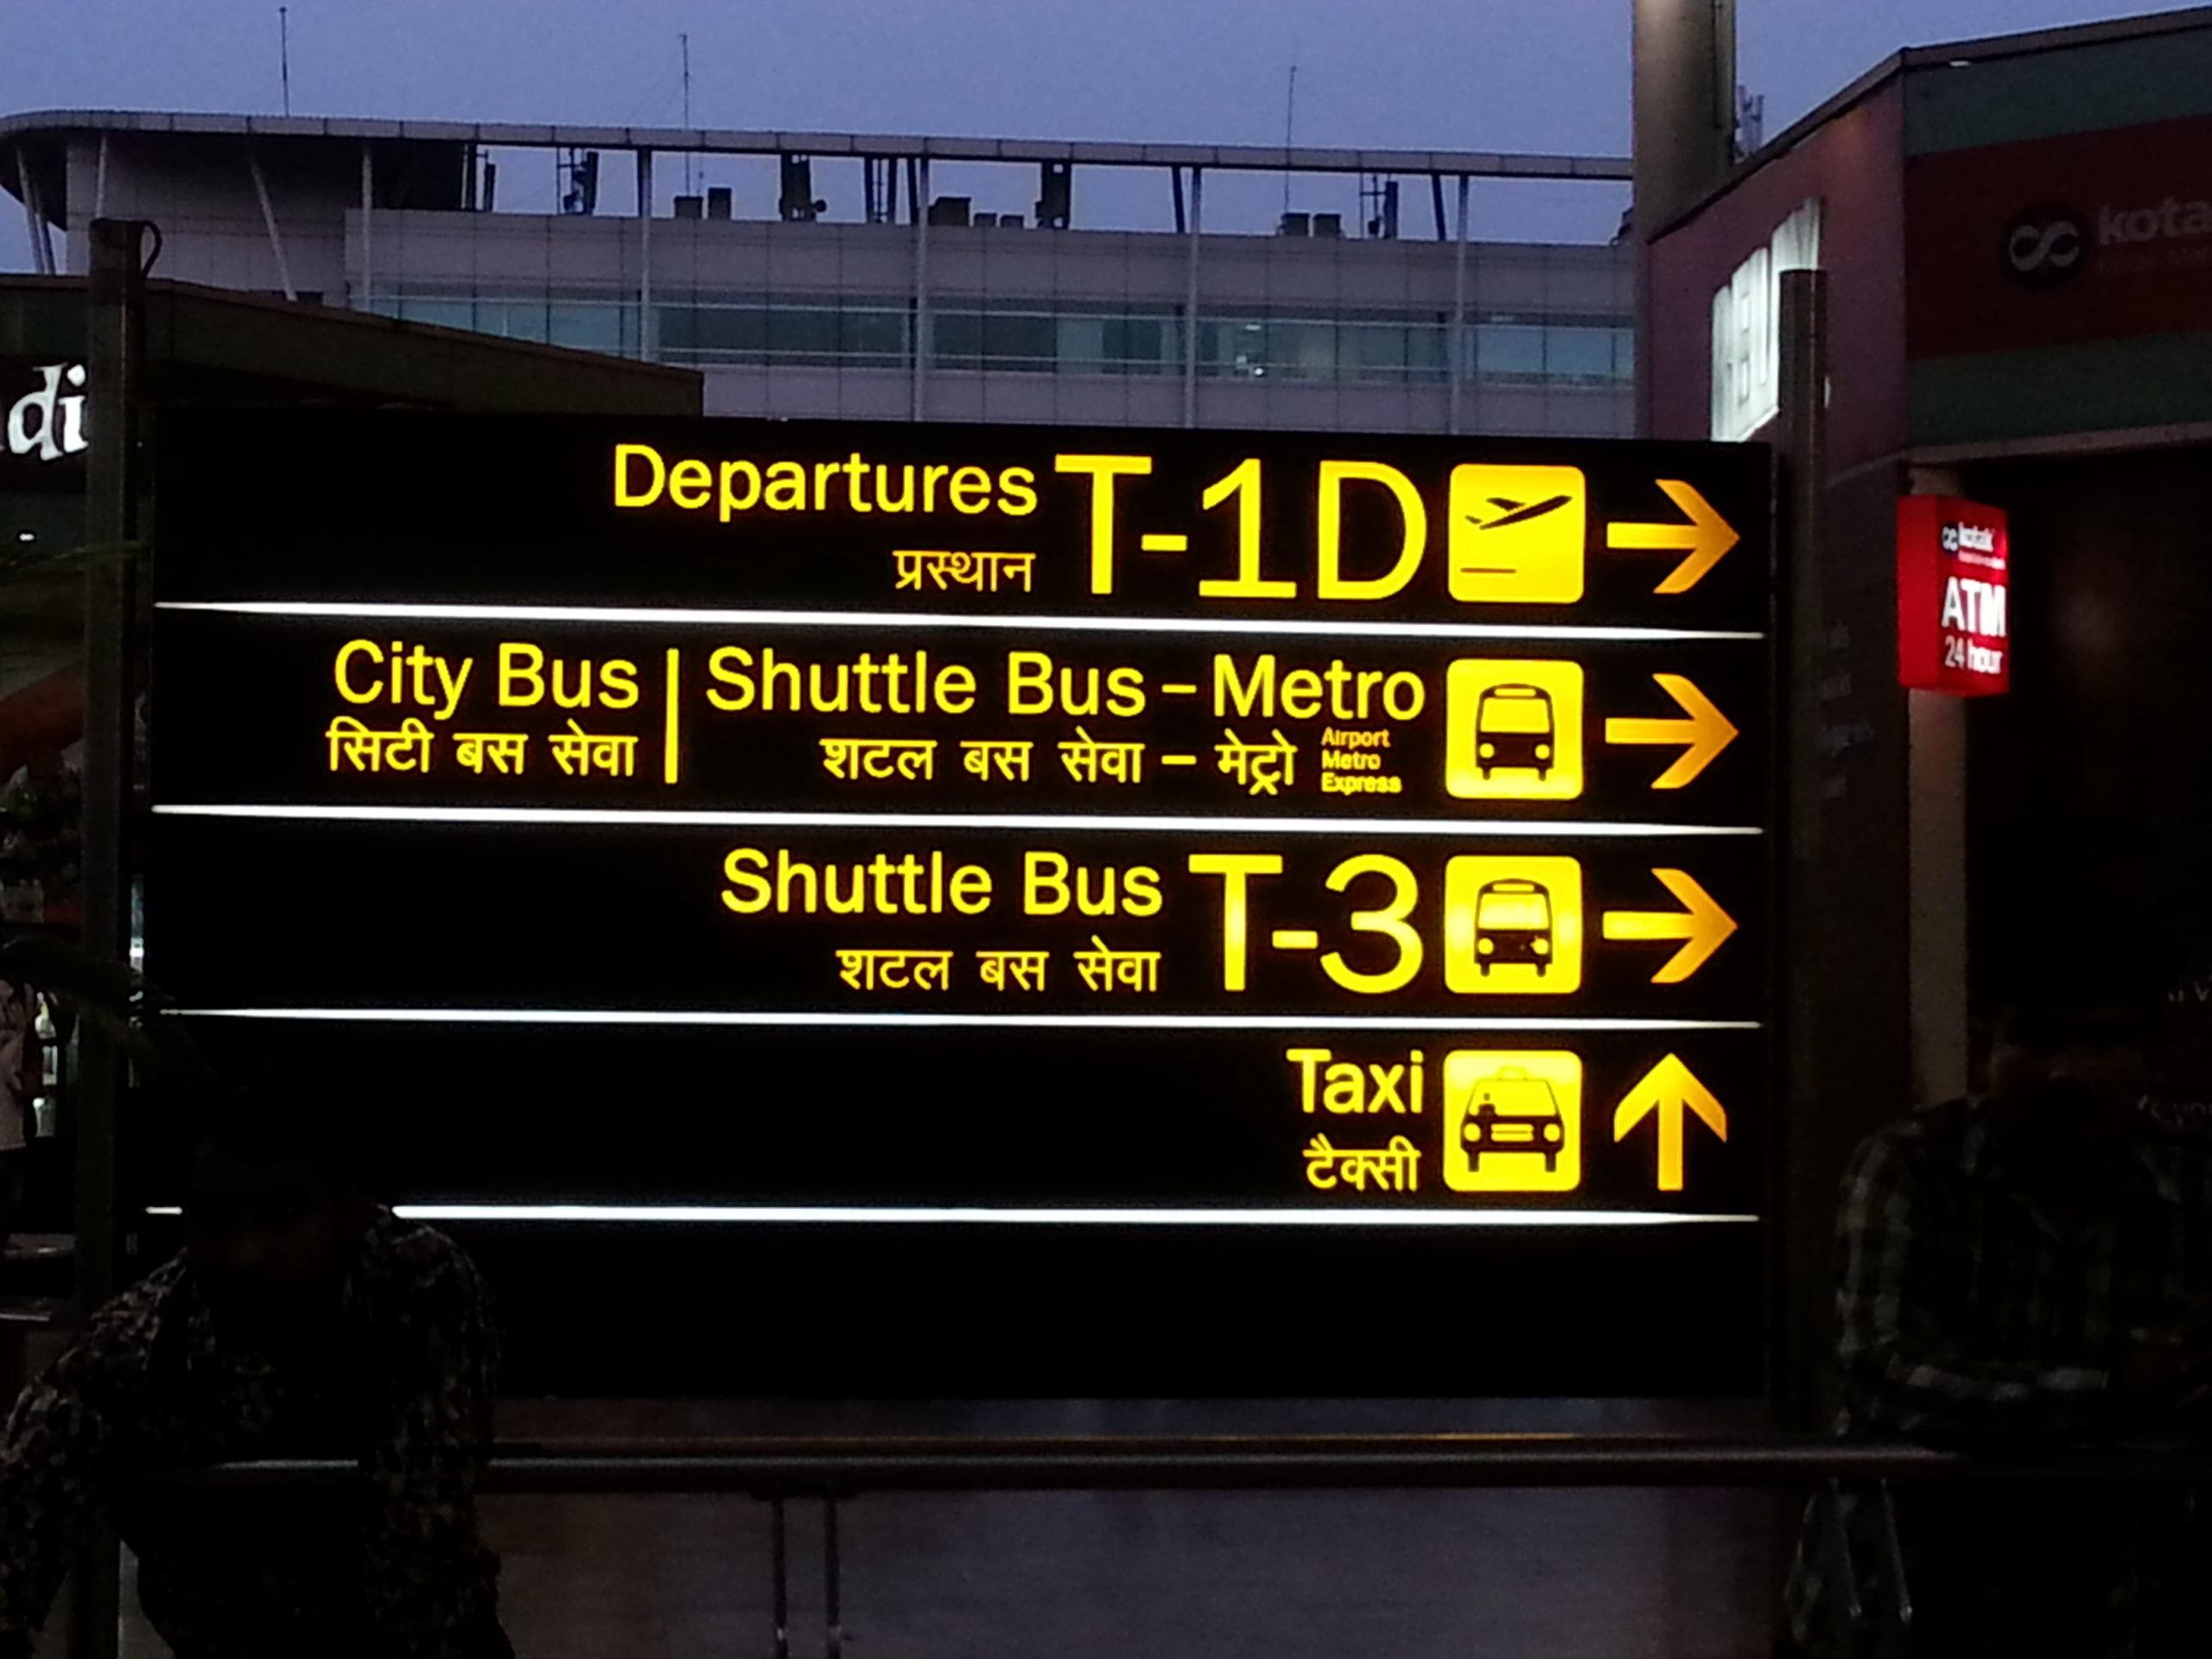 airport sign showing direction to different types of airport to city transfers